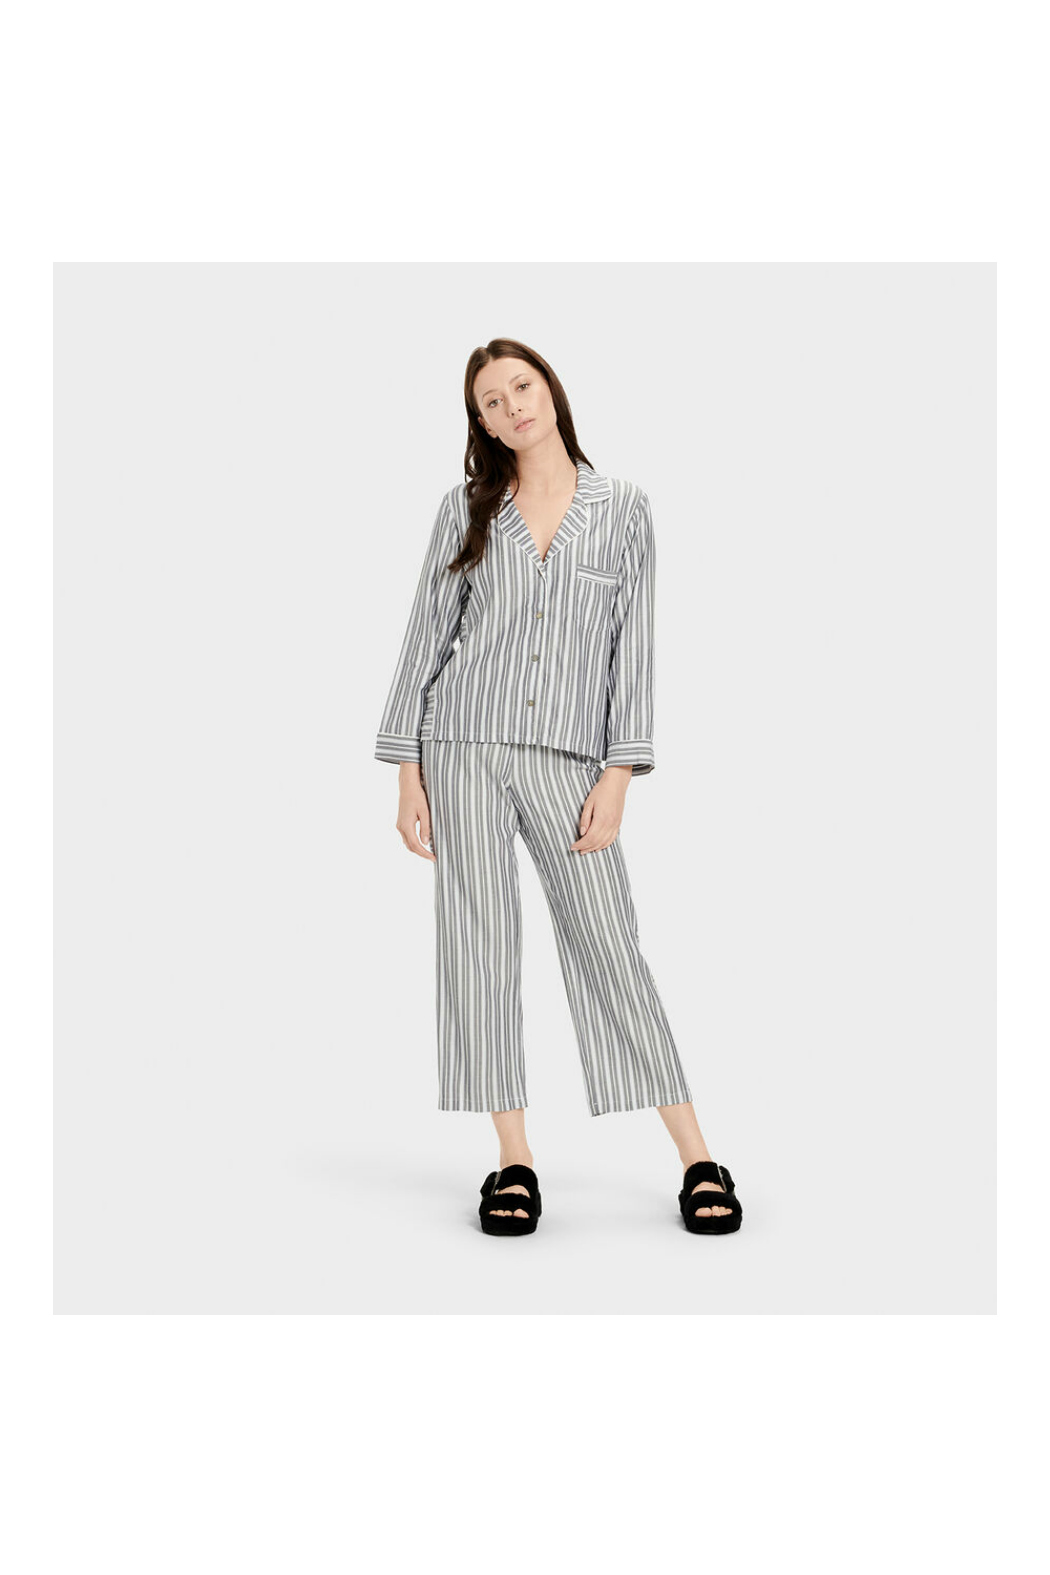 Ugg KATHARINE PJ SET STRIPE - Back Cropped Image